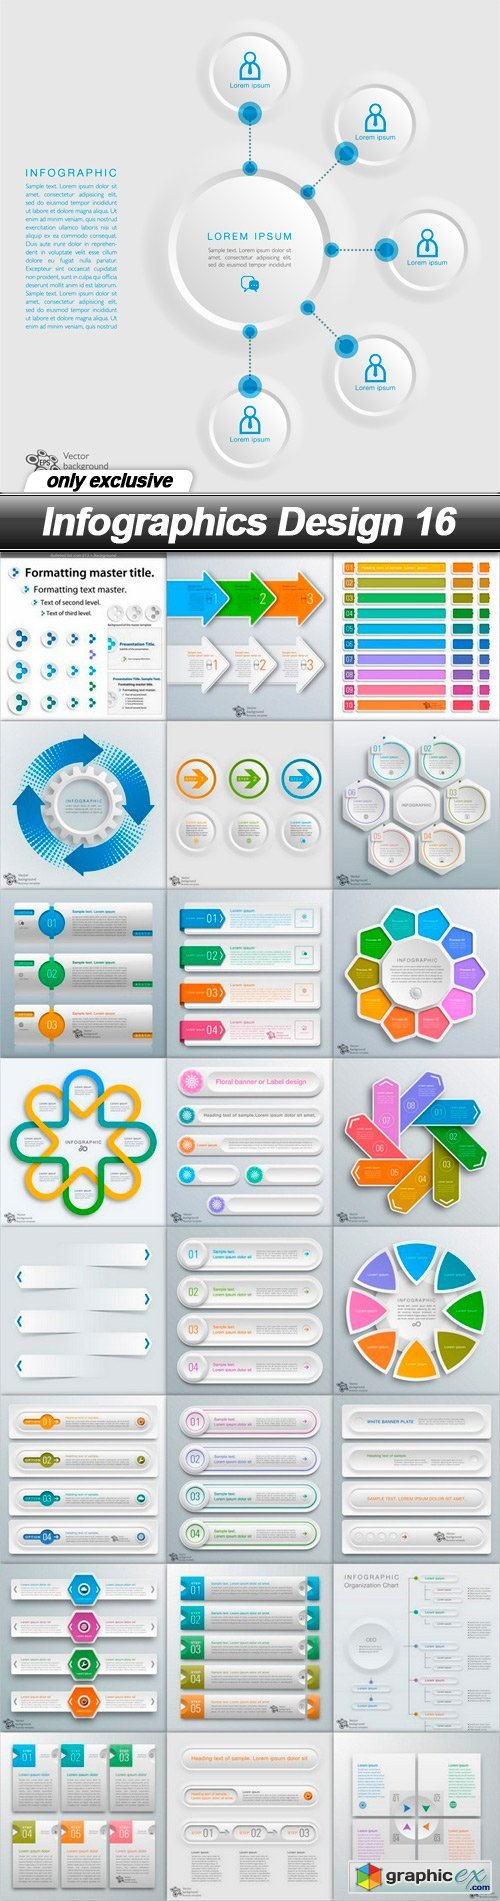 Infographics Design 16 - 25 EPS